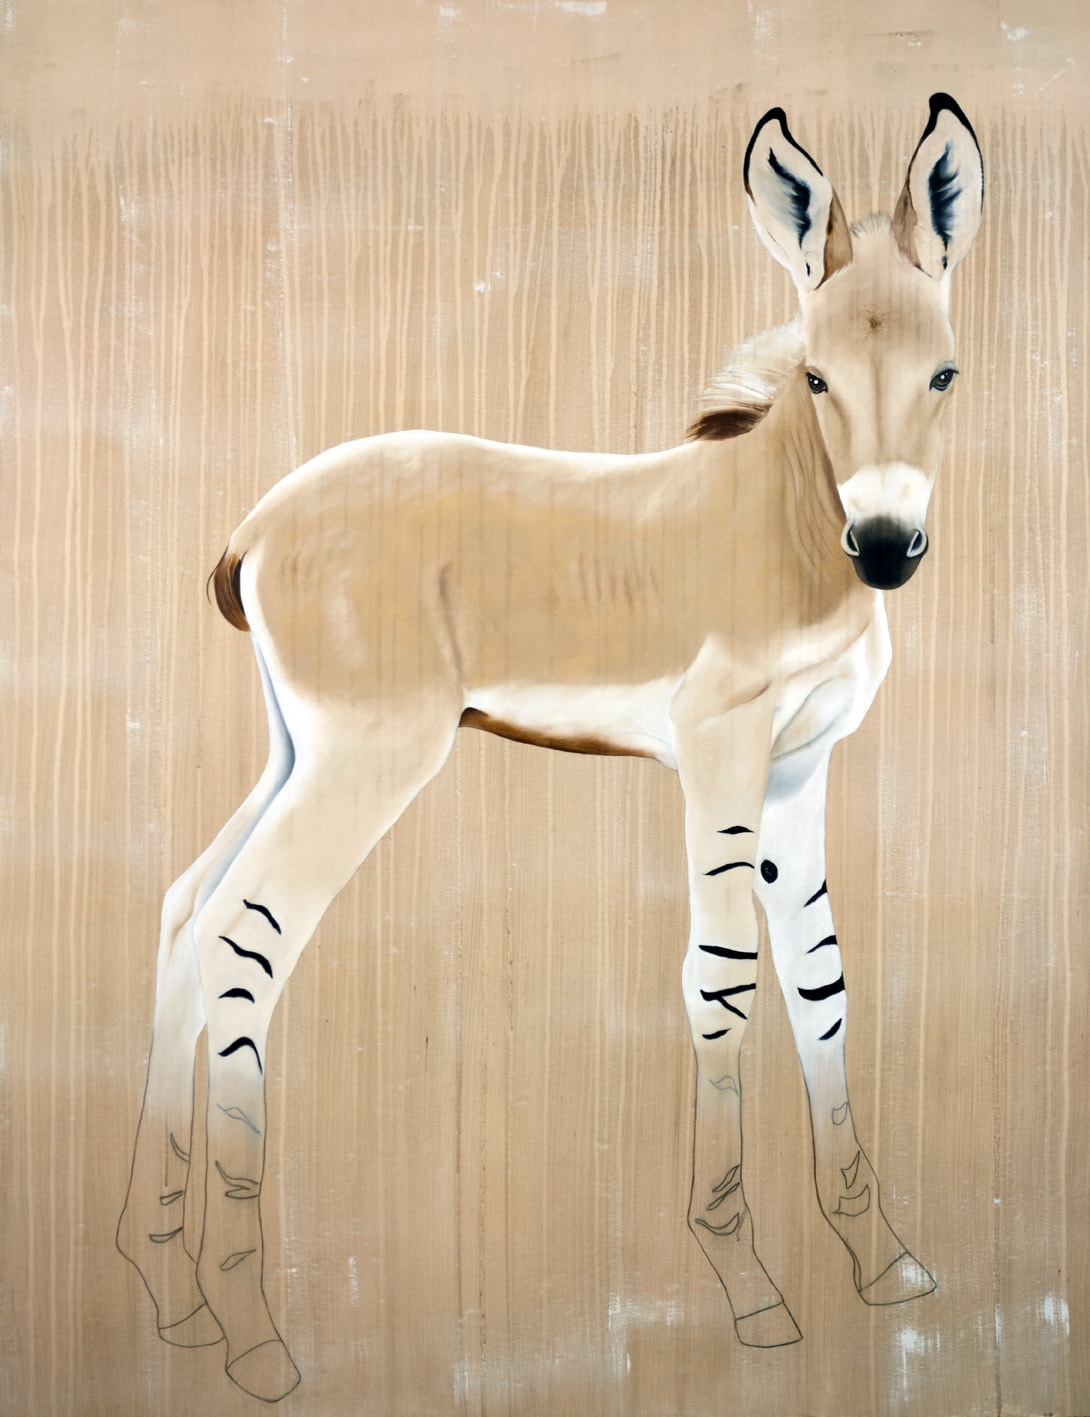 EQUUS ASINUS AFRICANUS african-wildass-wild-donkey-equus-asinus-africanus-threatened-endangered-thierry-bischextinction Animal painting by Thierry Bisch pets wildlife artist painter canvas art decoration